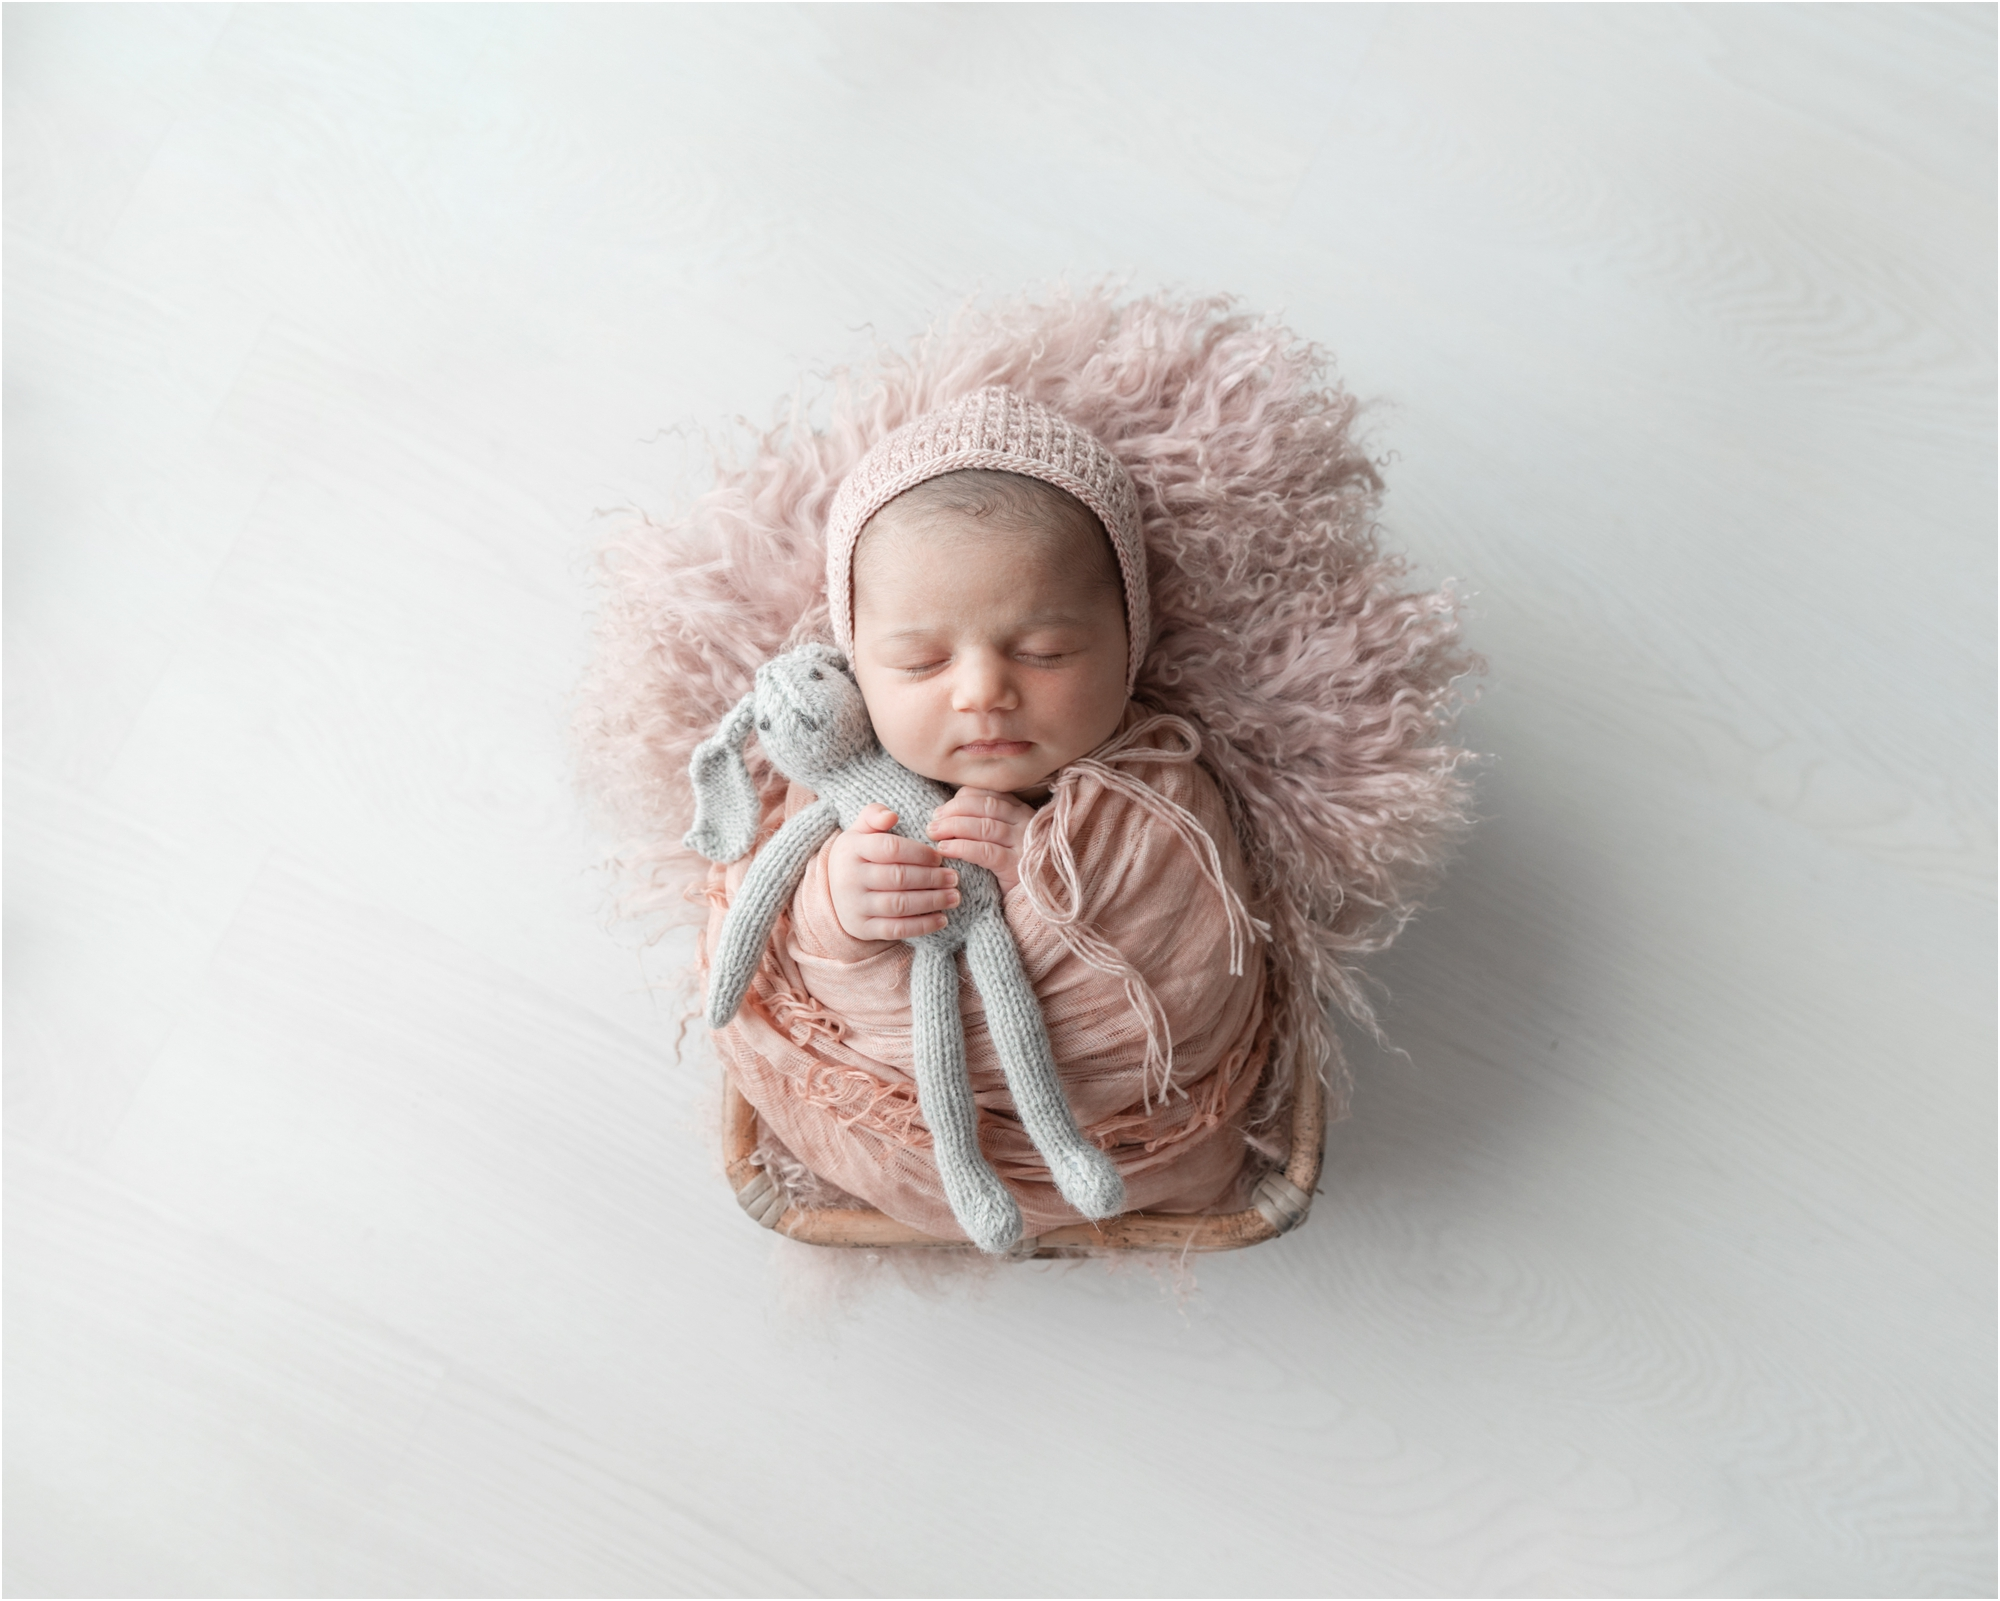 Baby girl in pink bonnet hugging knit stuffed animal. Photo by Lifetime of Clicks Photography.